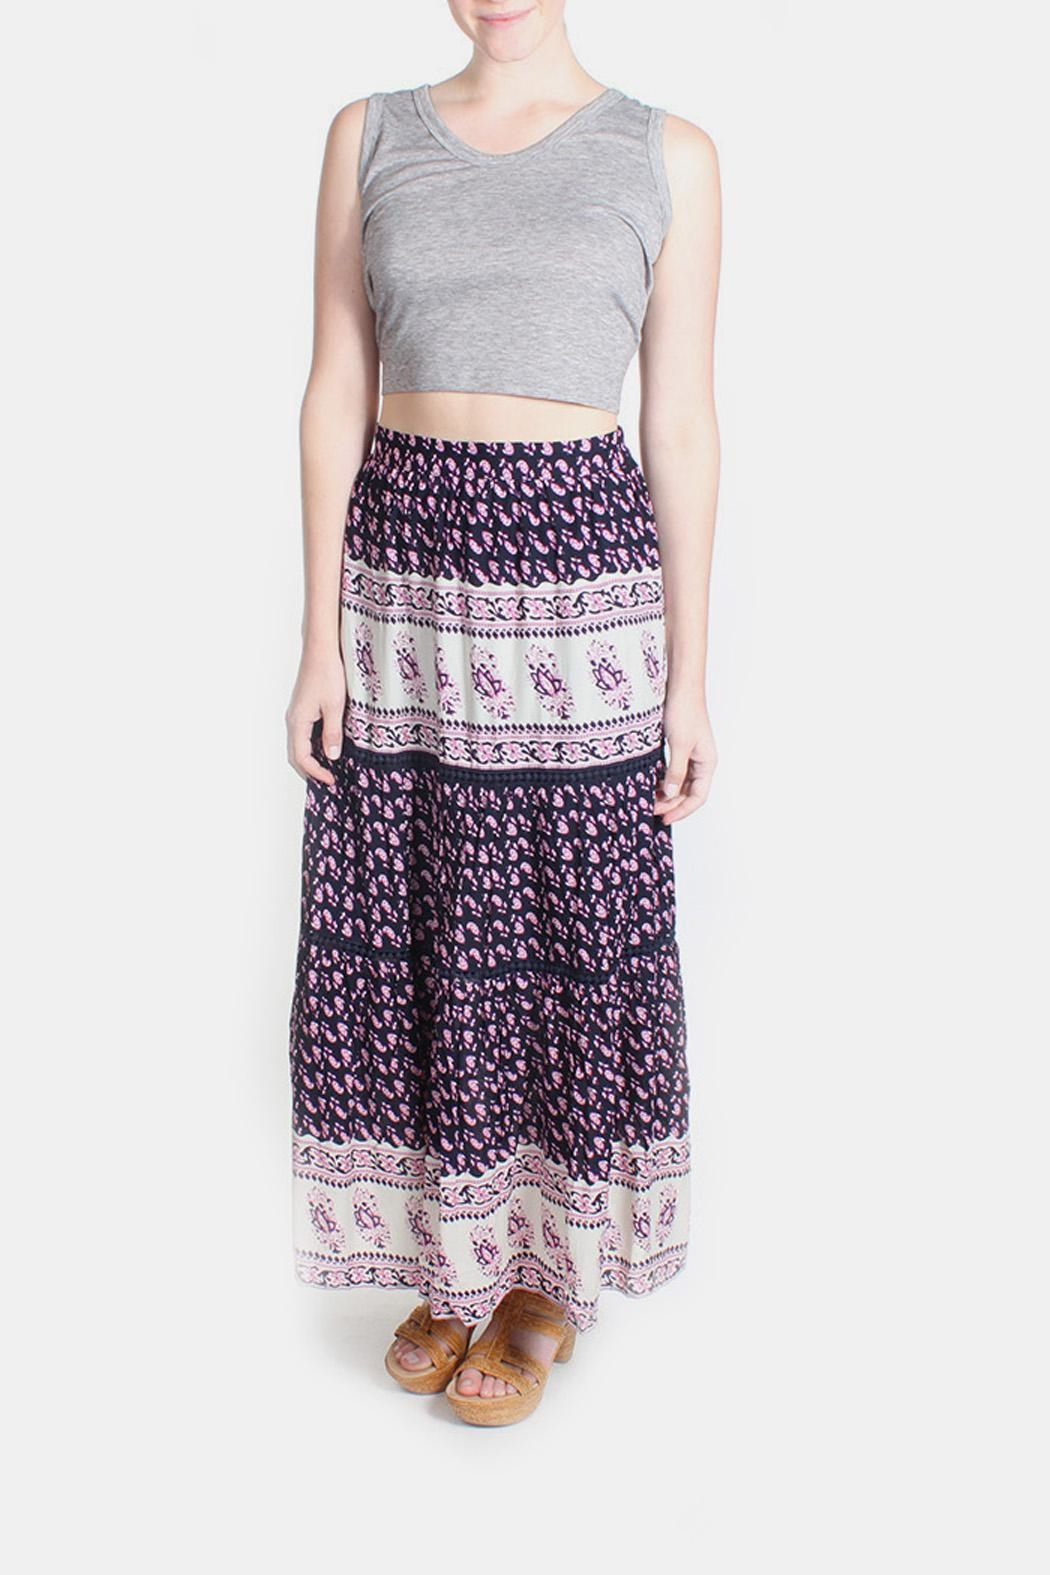 Skies Are Blue Pink Patterned Maxi Skirt - Front Full Image